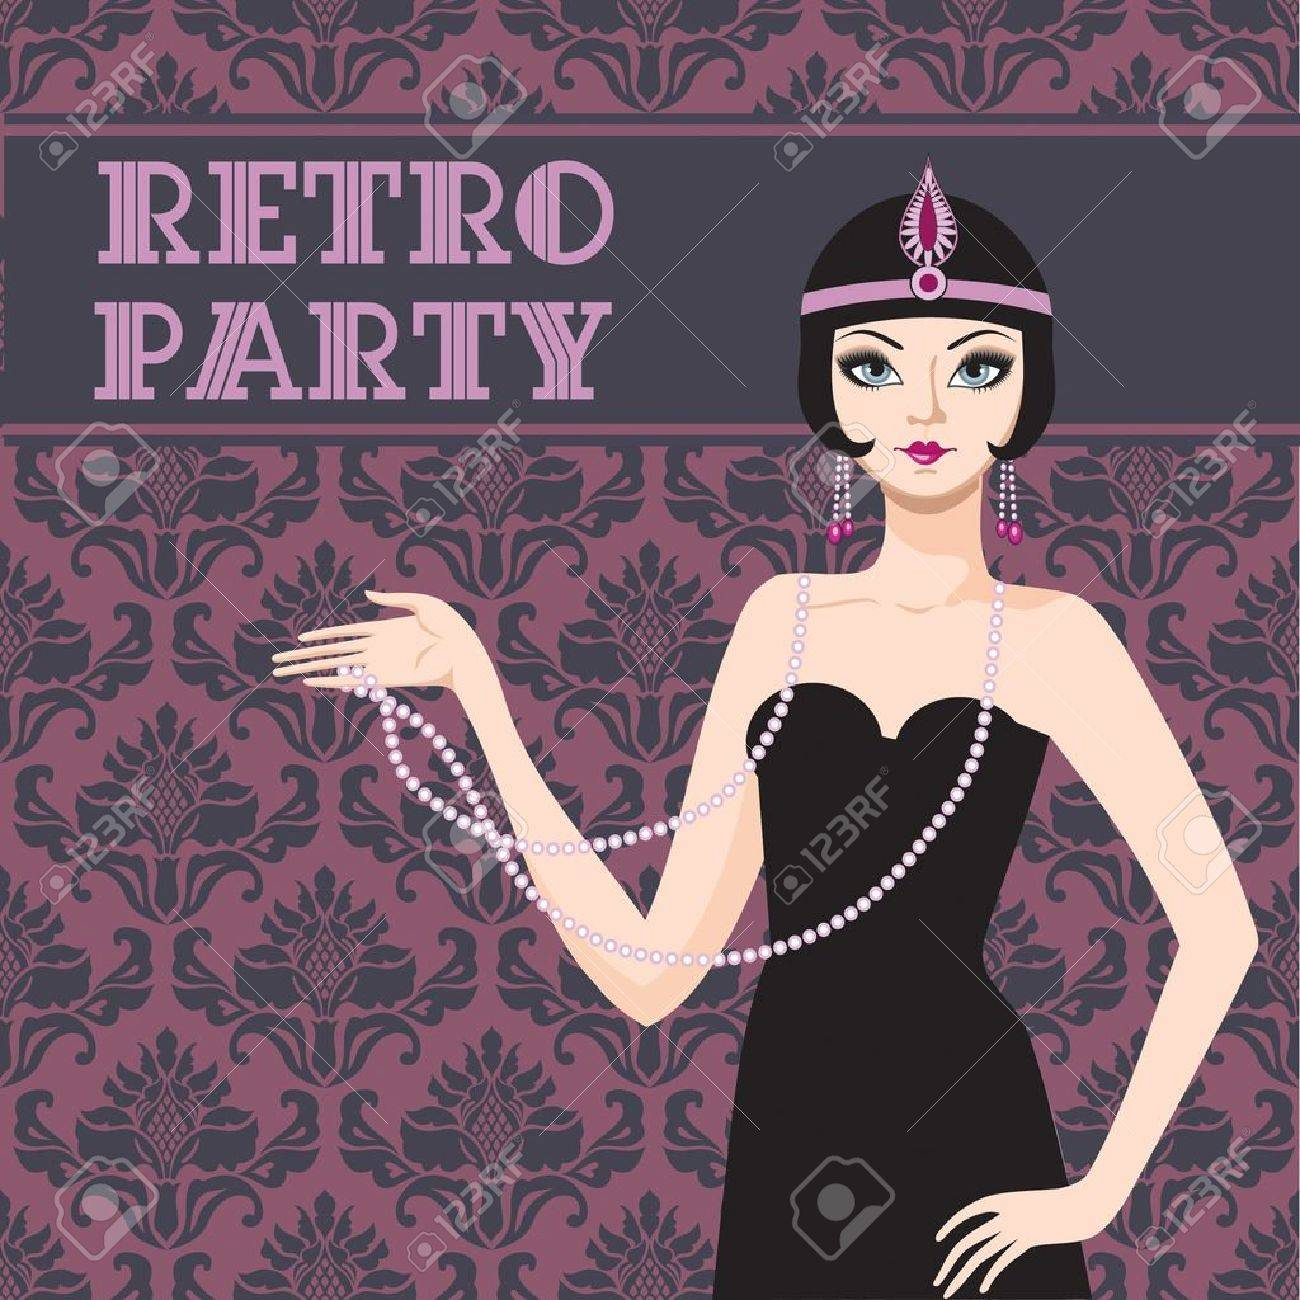 Retro party invitation card beatyful woman 20s Stock Vector - 16702148